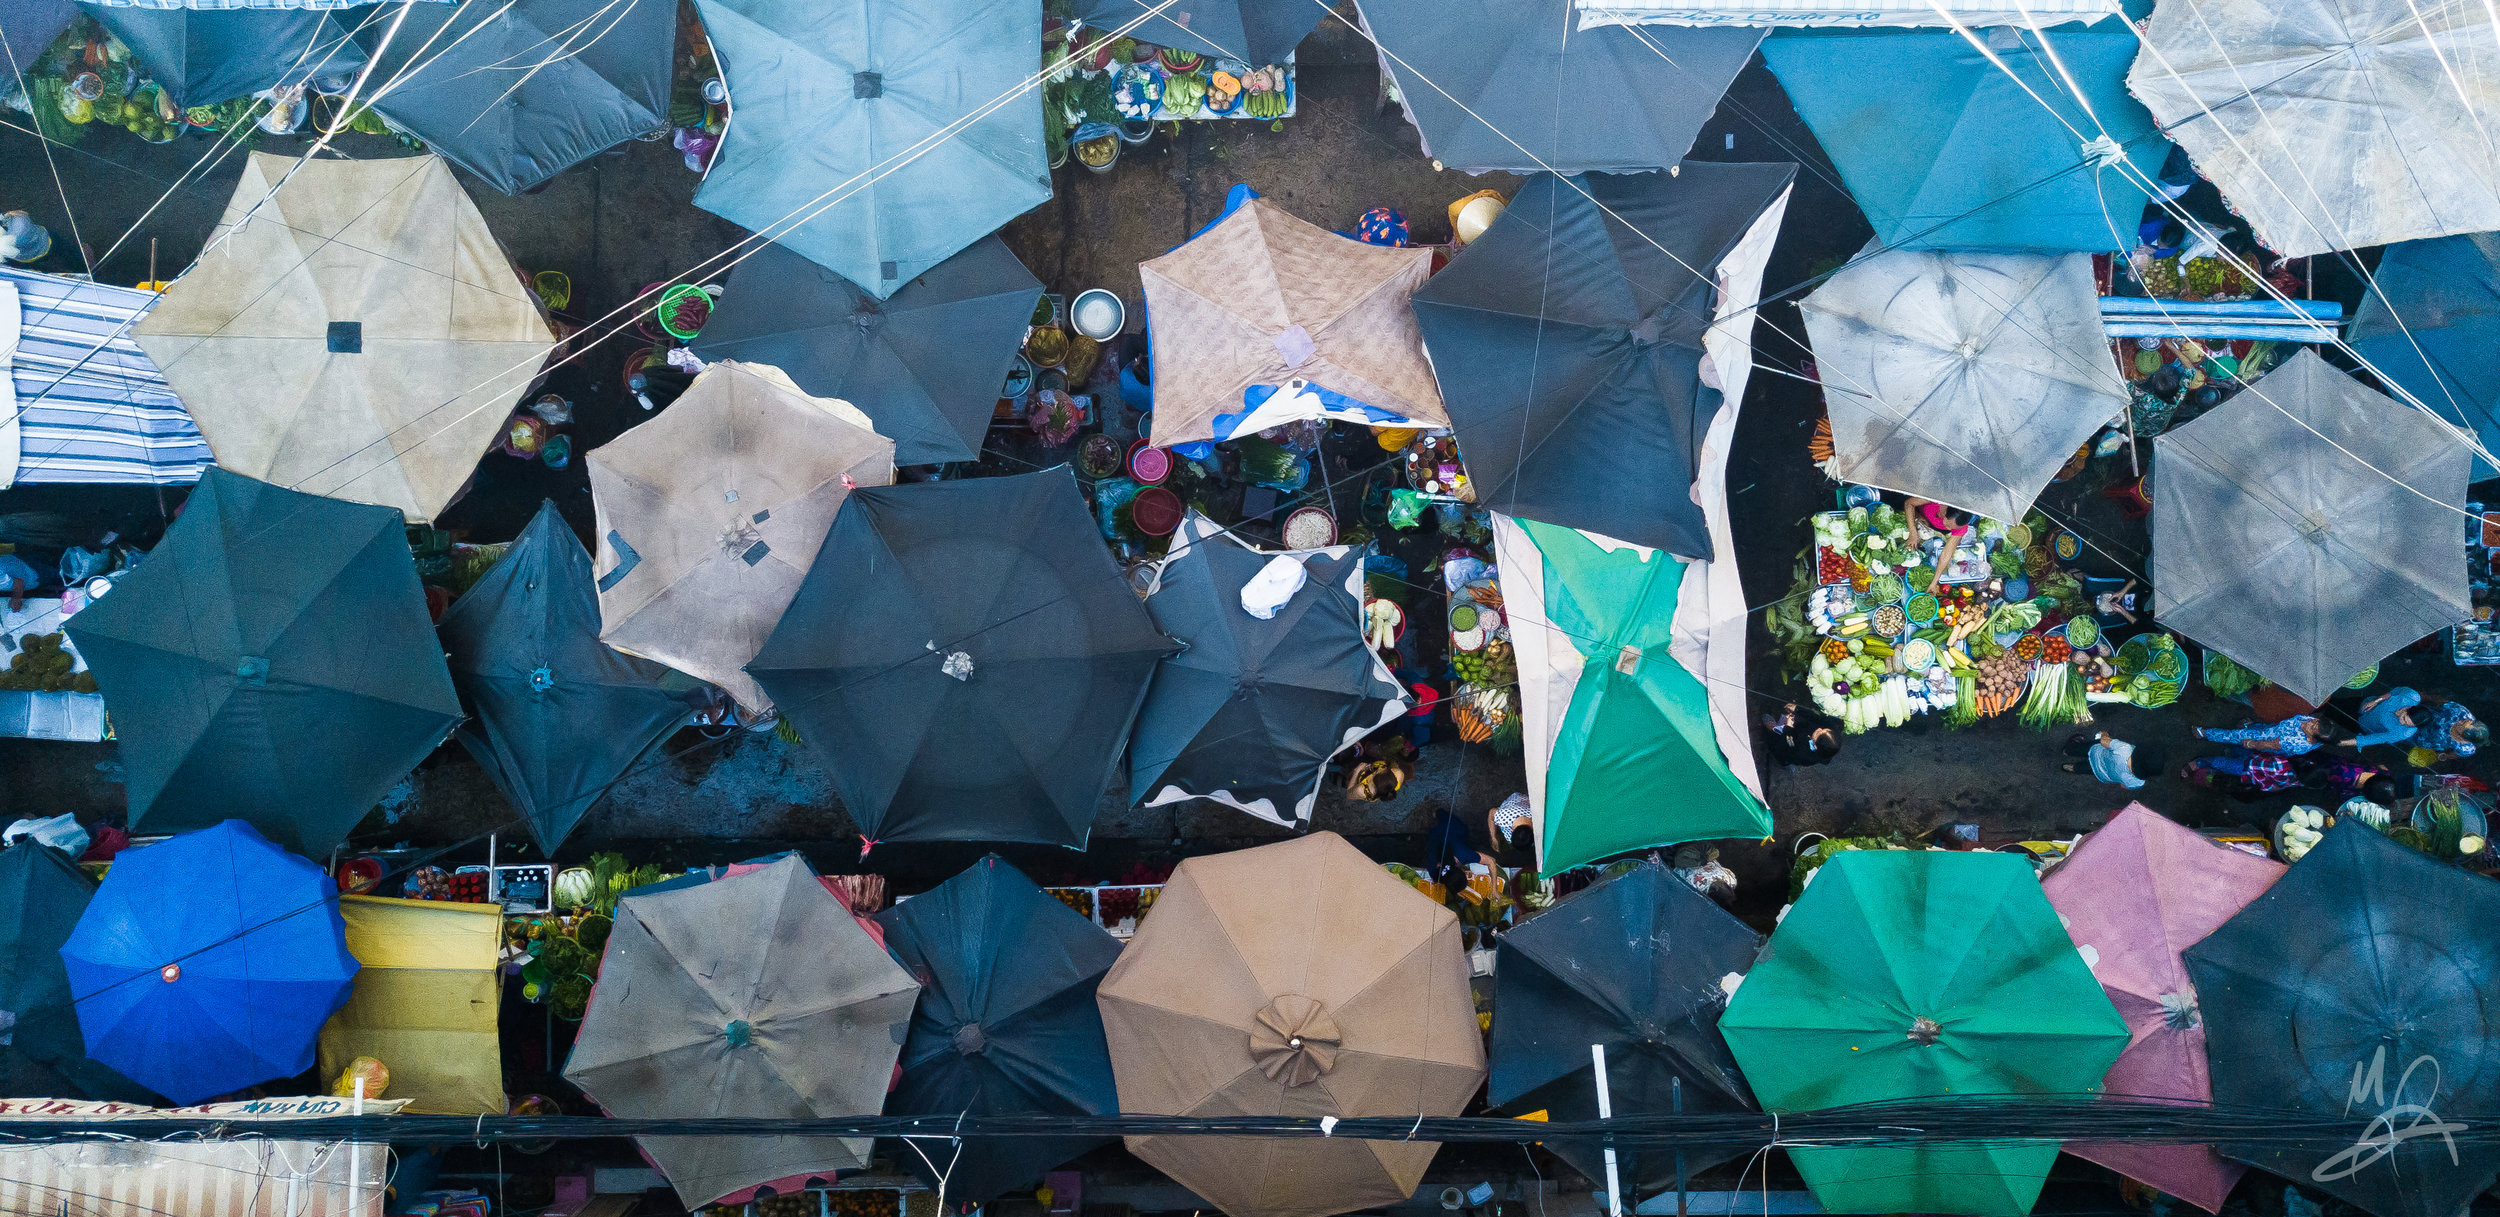 Umbrellas in a market 1/3